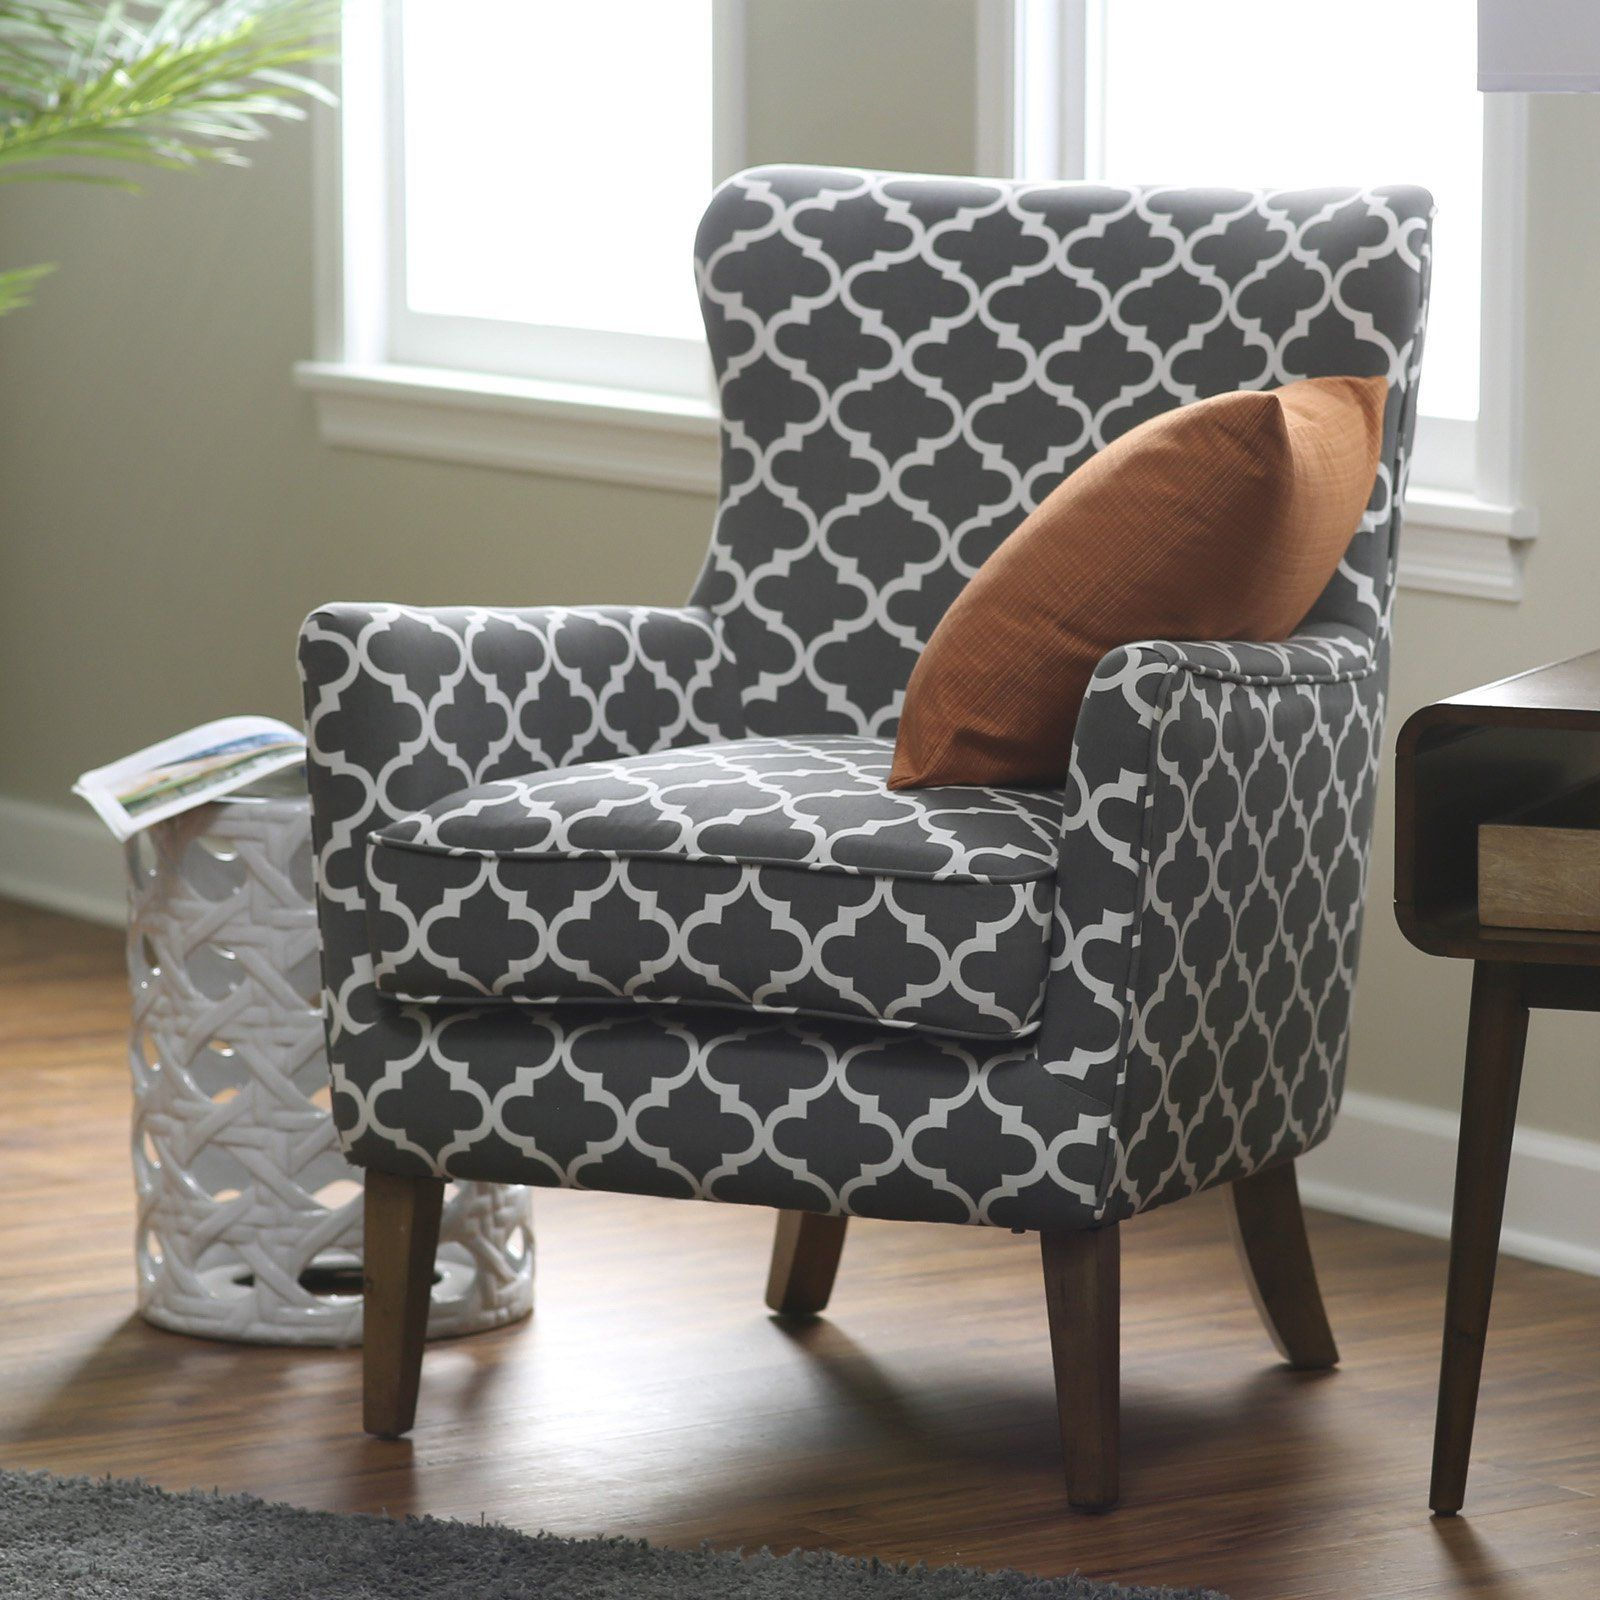 Belham Living Palmer Printed Arm Chair – A sophisticated choice for your tailore…